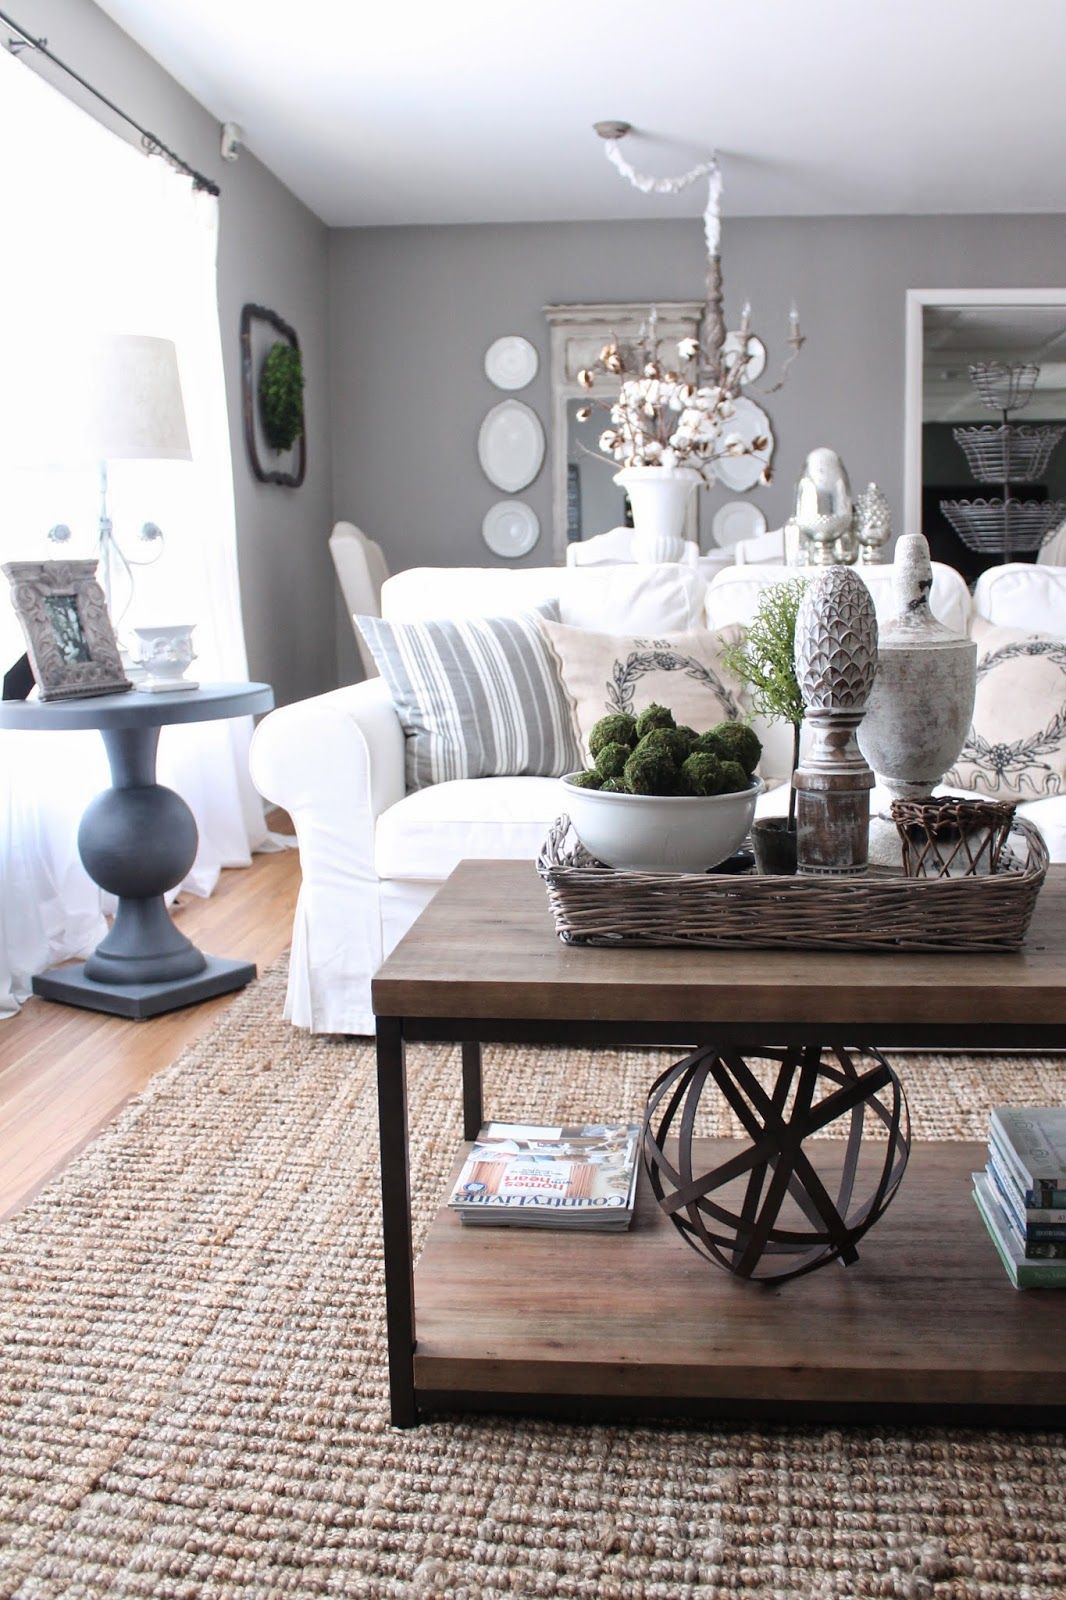 modern country living room designs vinyl flooring house tour french style fresh and take on styling from12th white